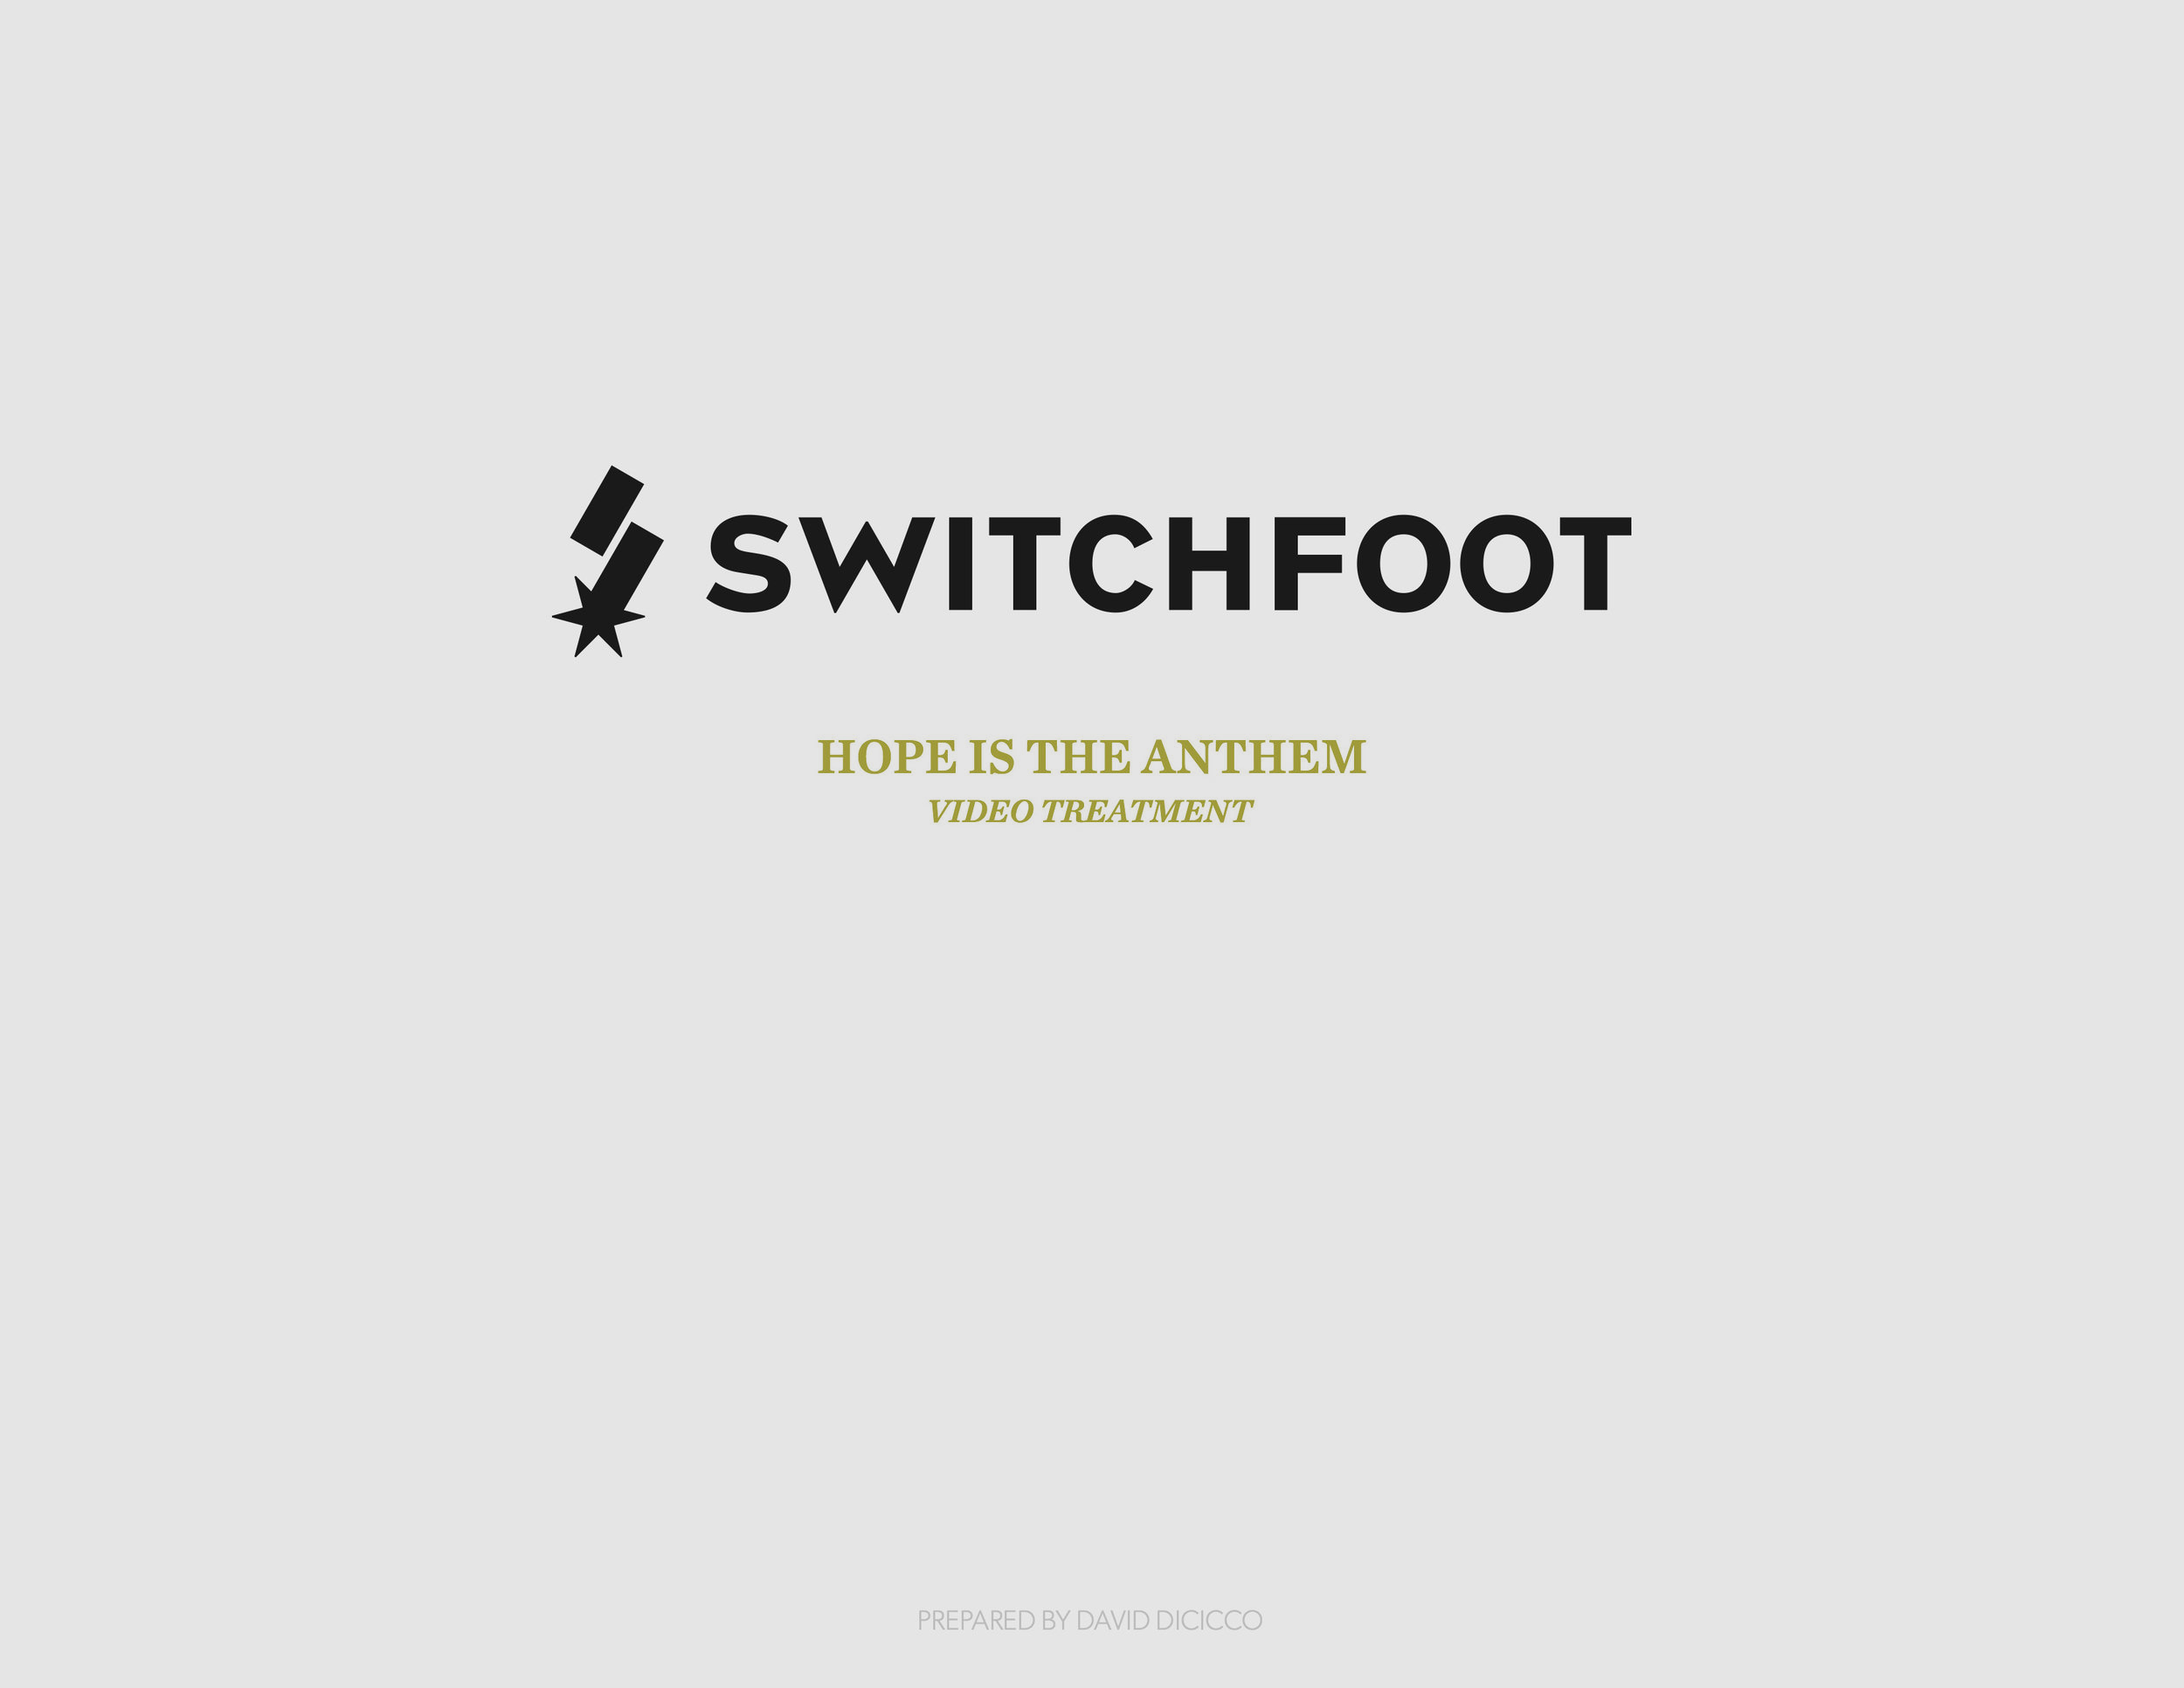 Switchfoot - Hope is the Anthem